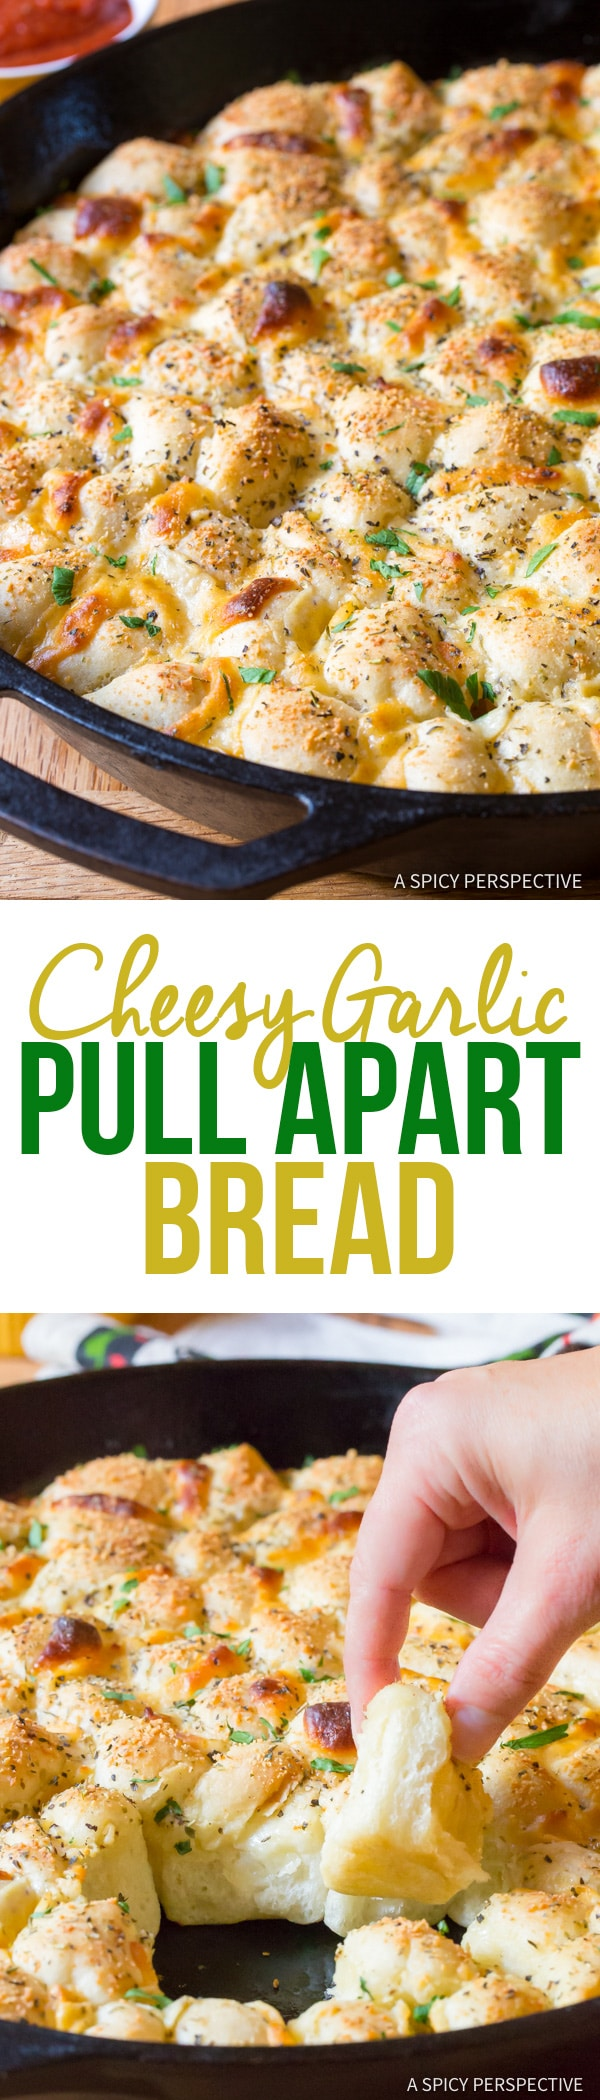 6-Ingredient Cheesy Garlic Pull Apart Bread Recipe   A Spicy Perspective